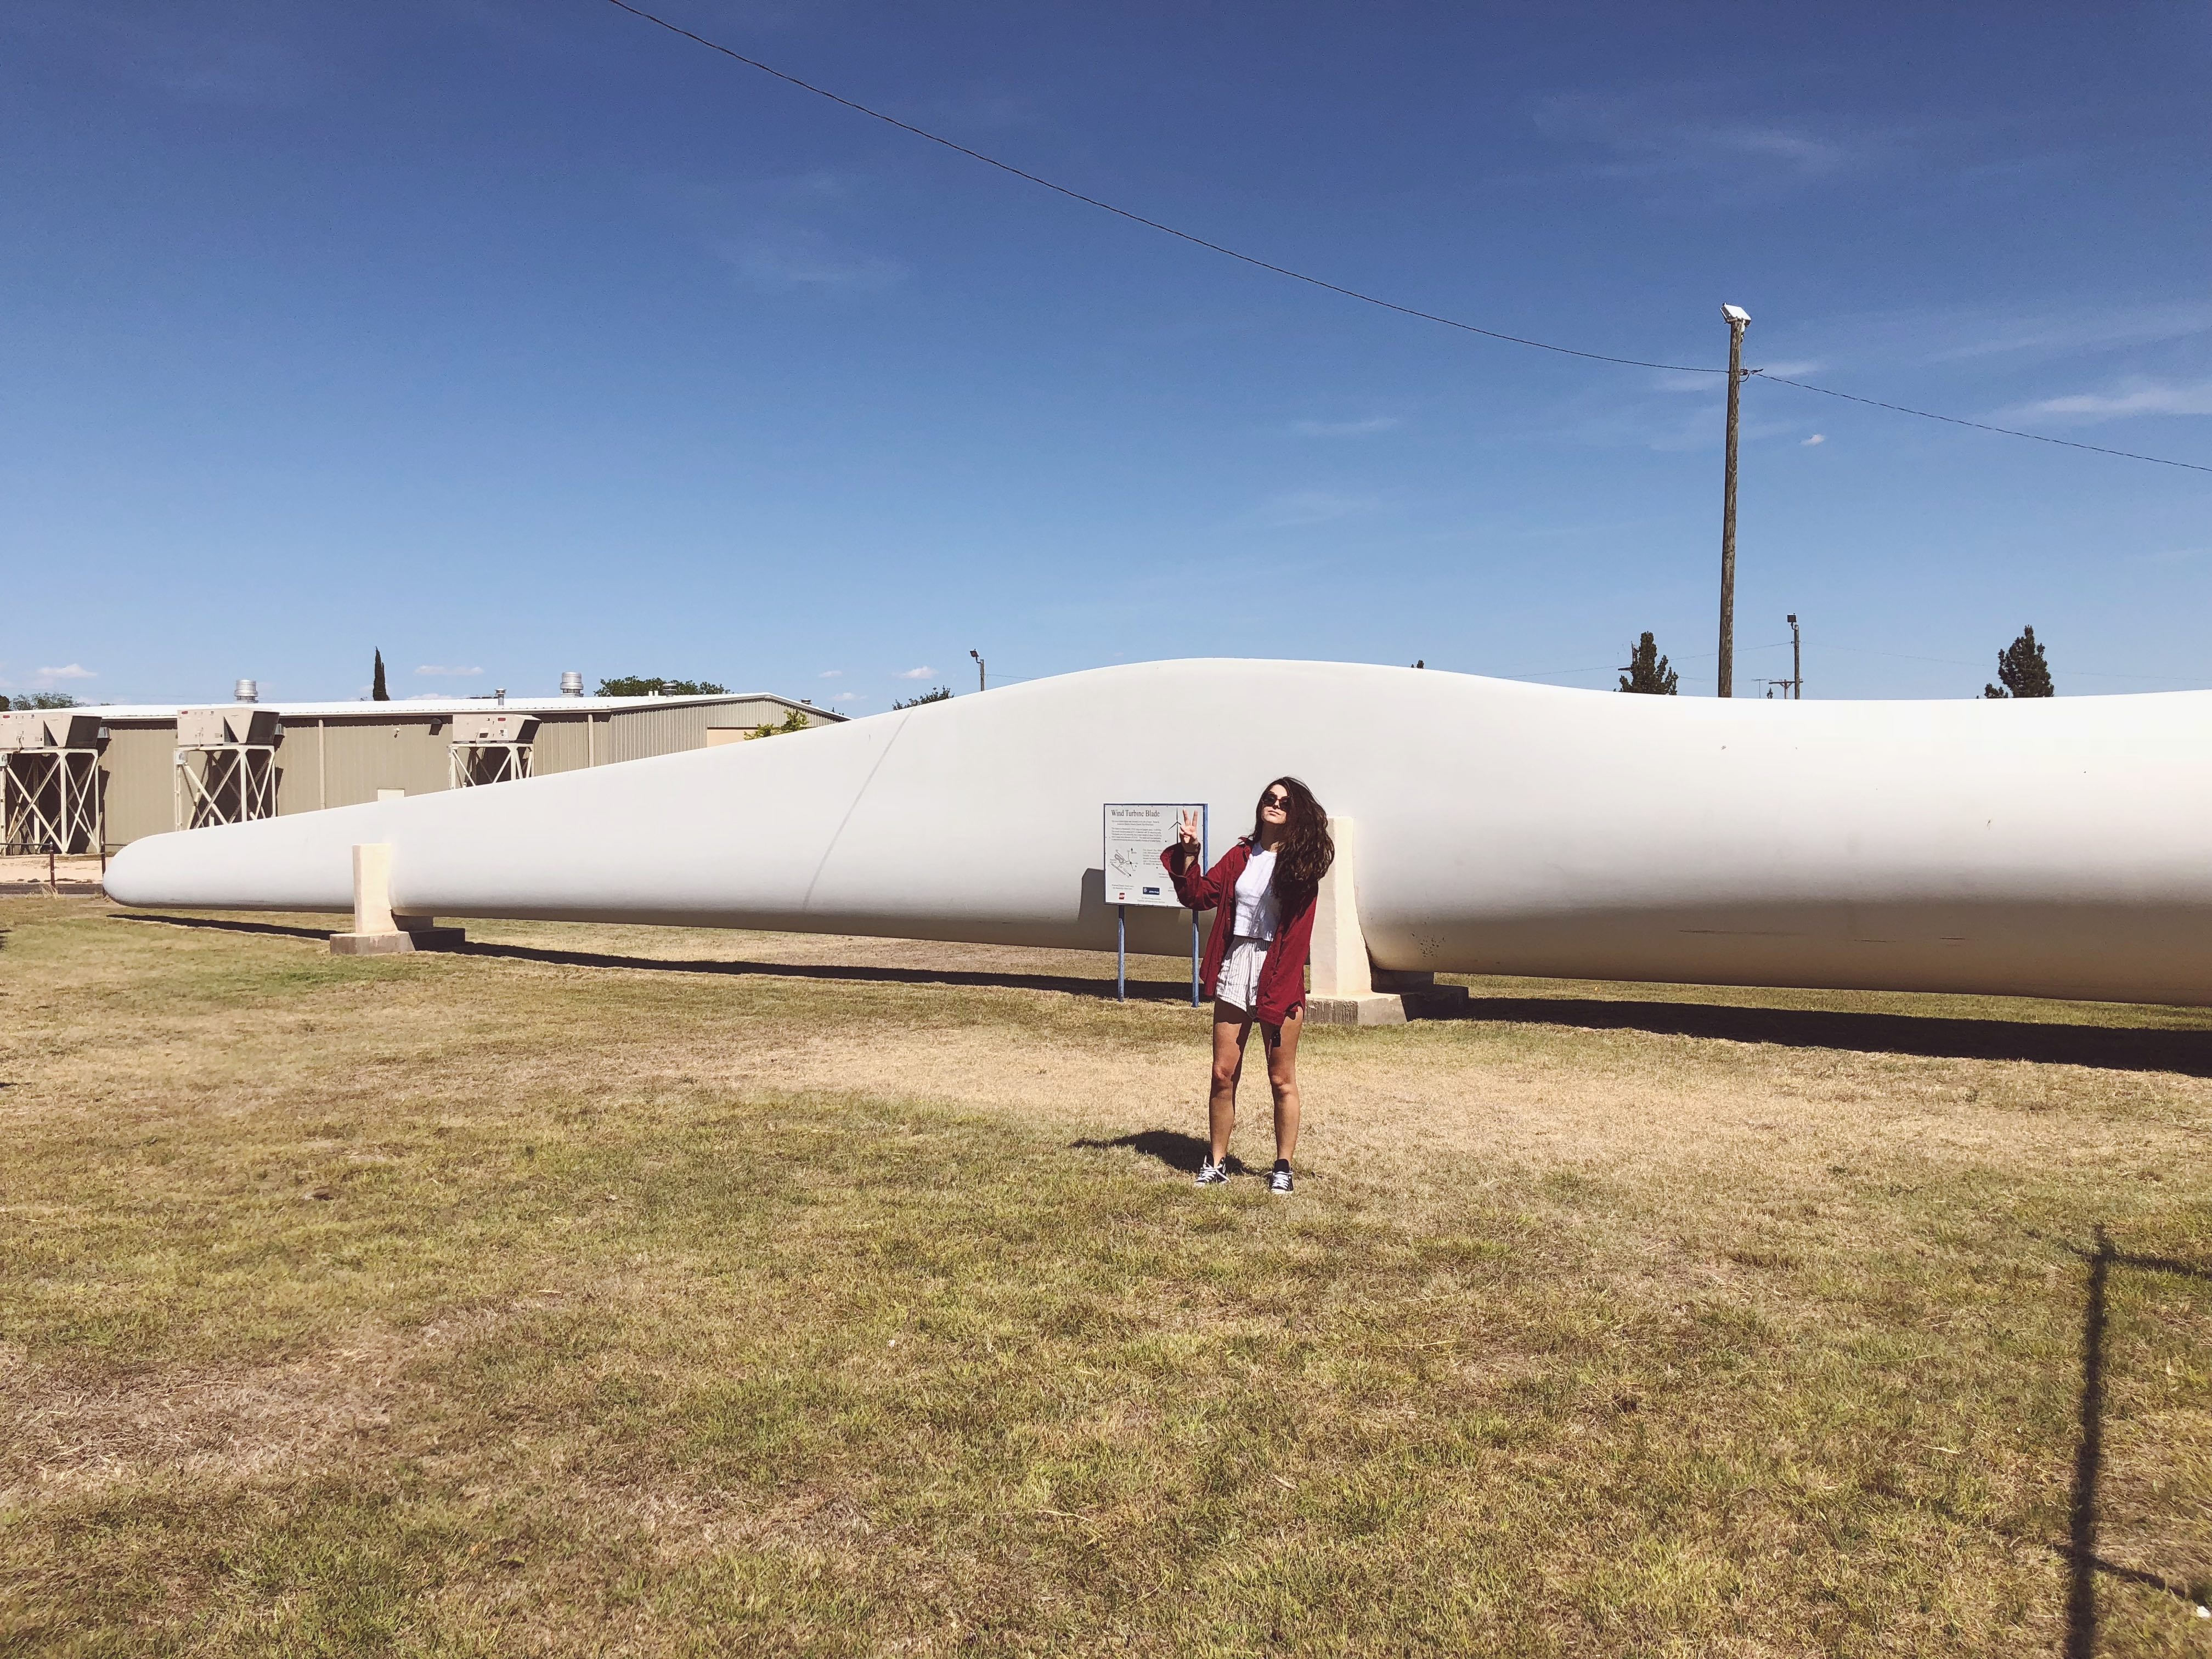 The size of a wind turbine blade, roadside attraction